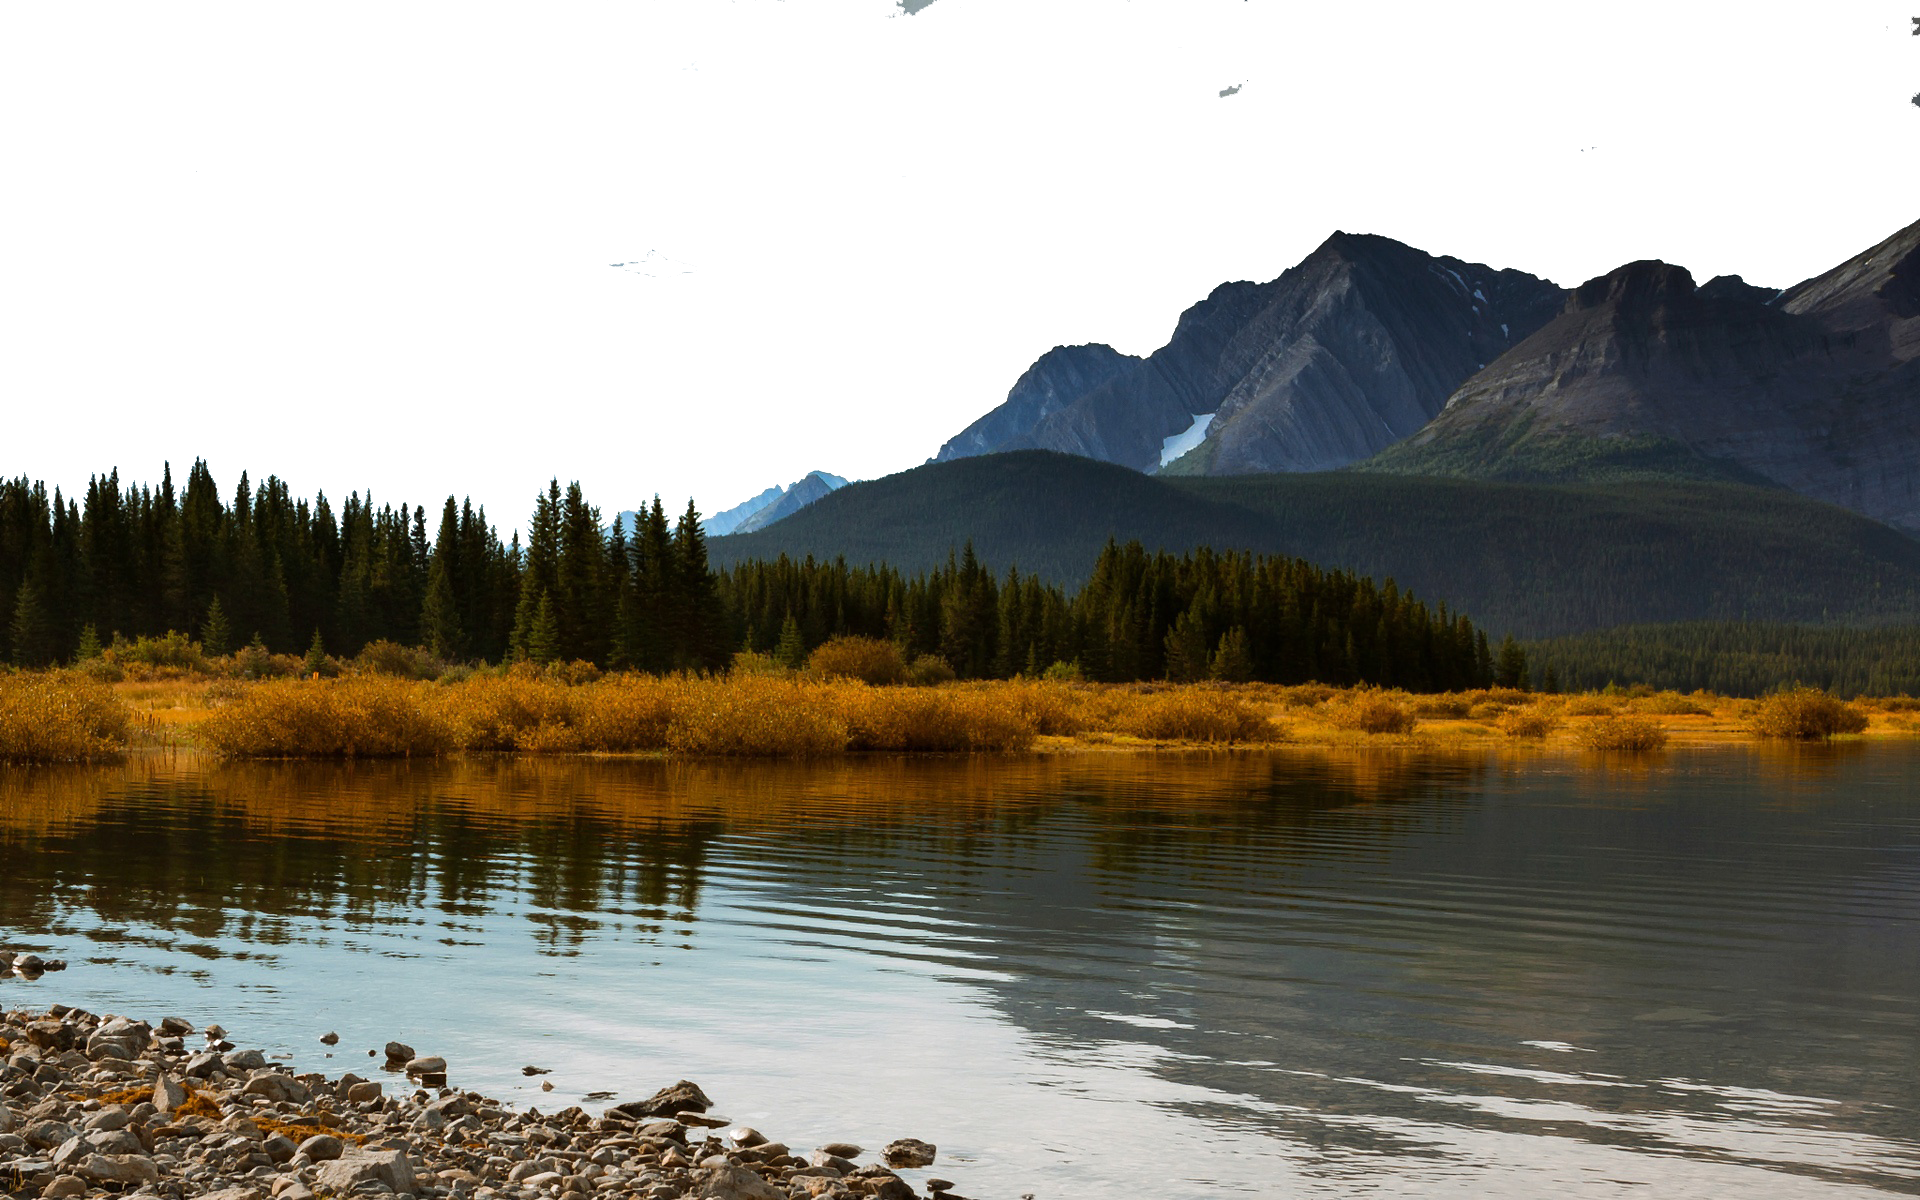 Waterbody by Vegetation and Mountains PNG Image